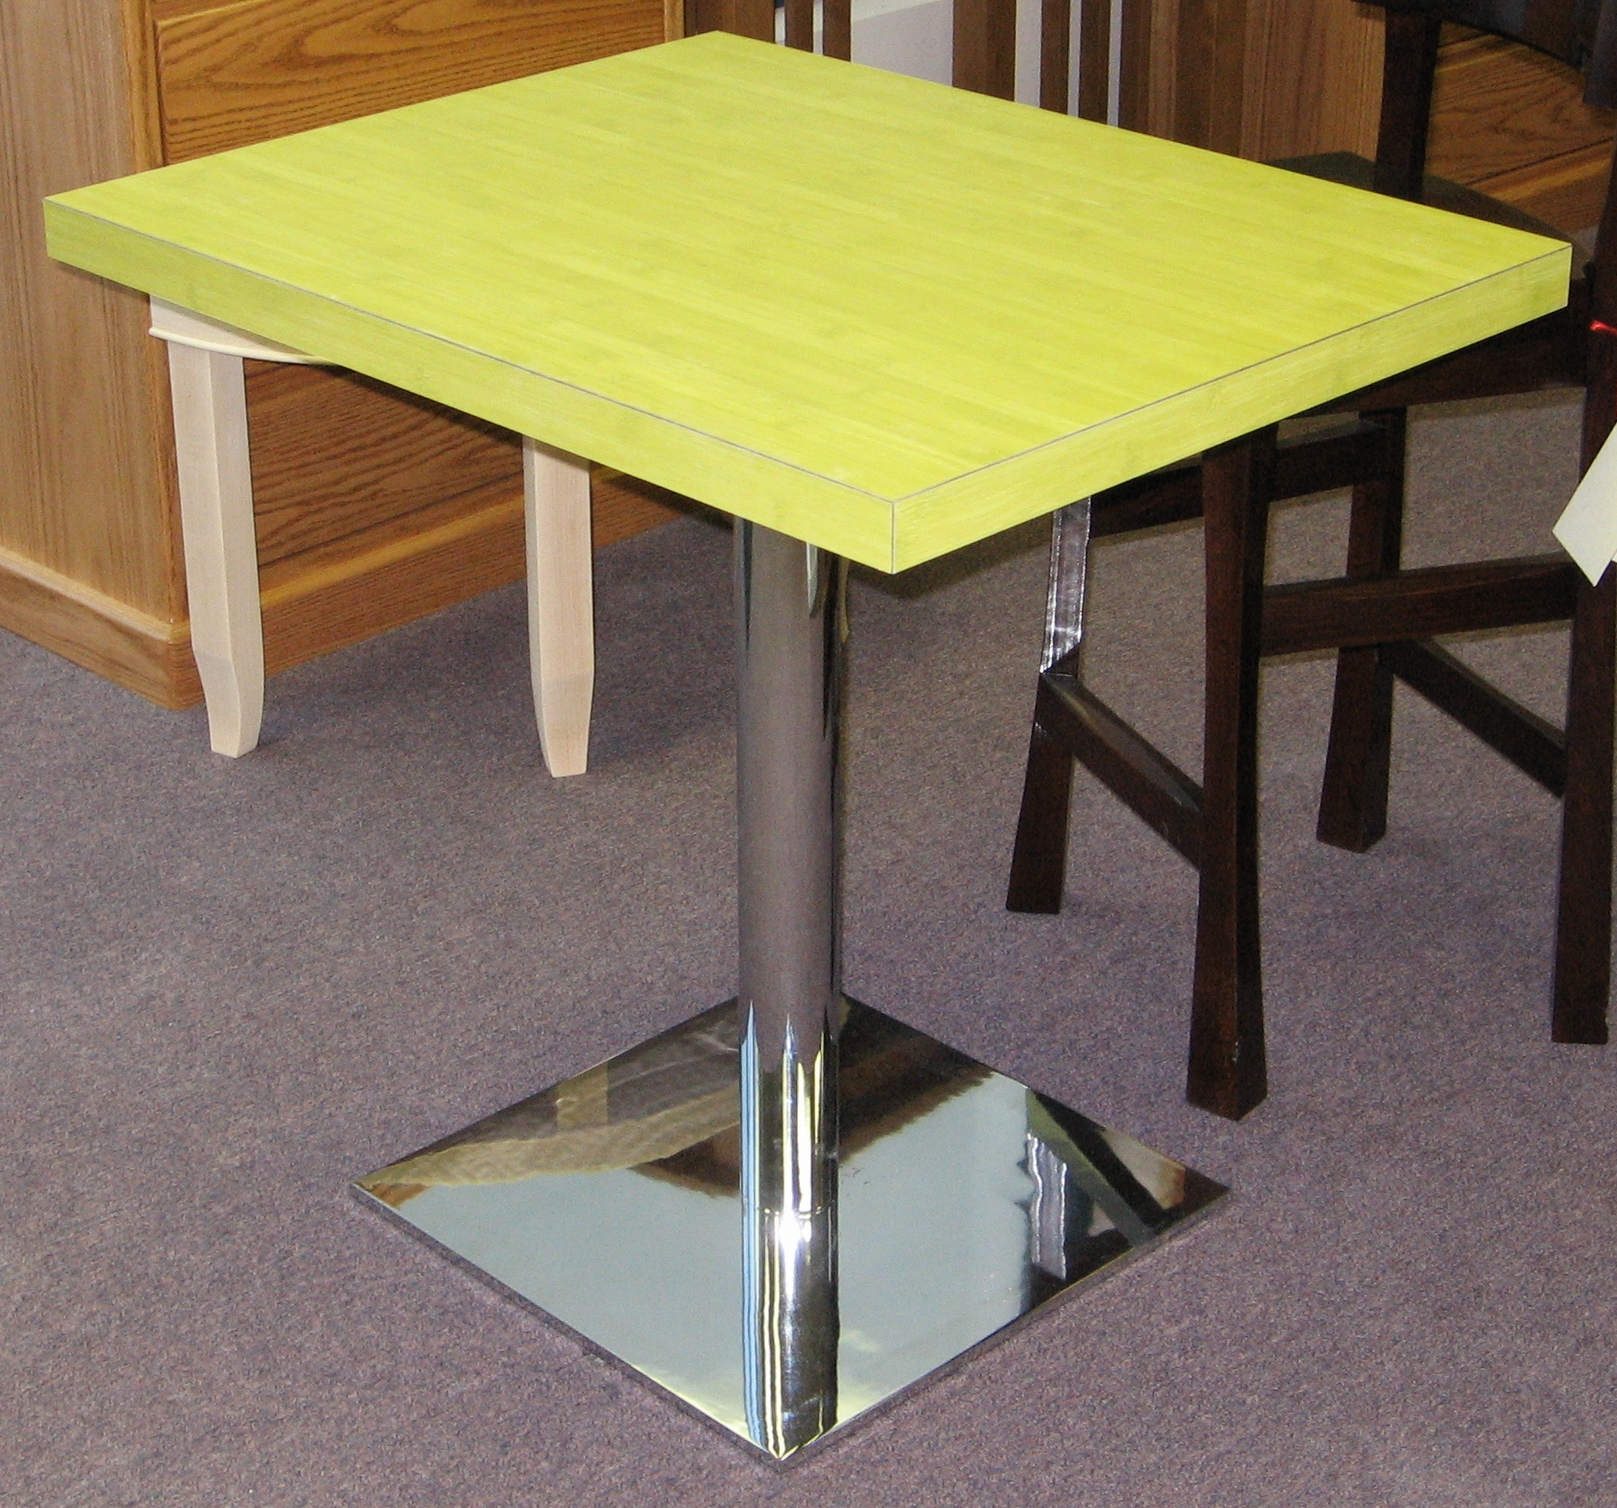 square-laminate-top-restaurant-table.JPG